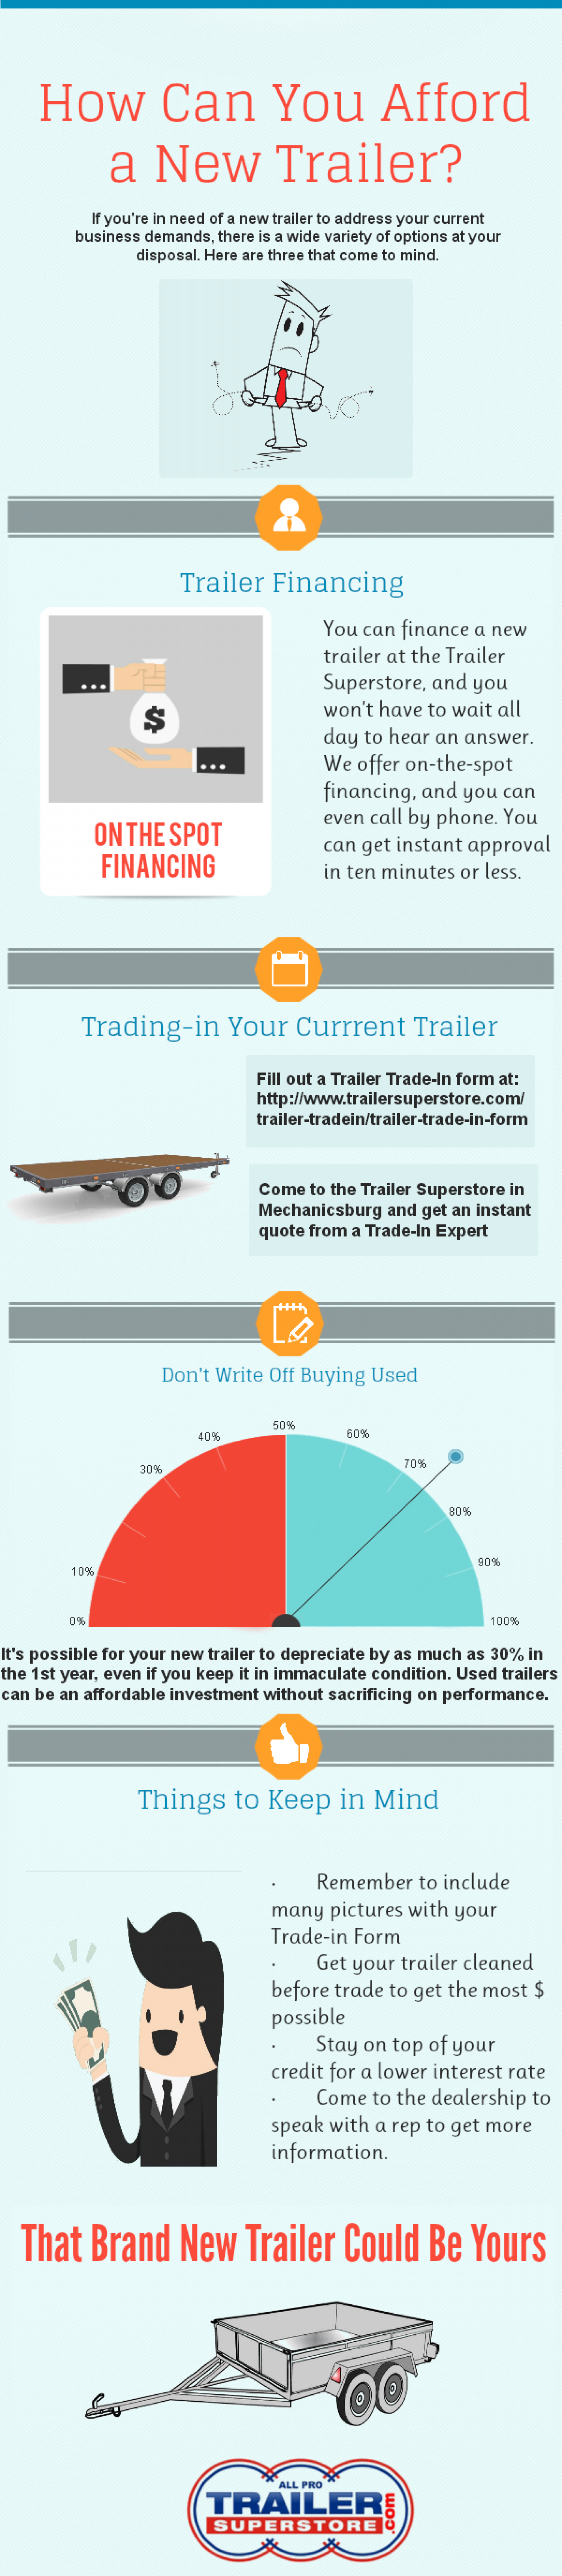 How Can You Afford a New Trailer? Infographic